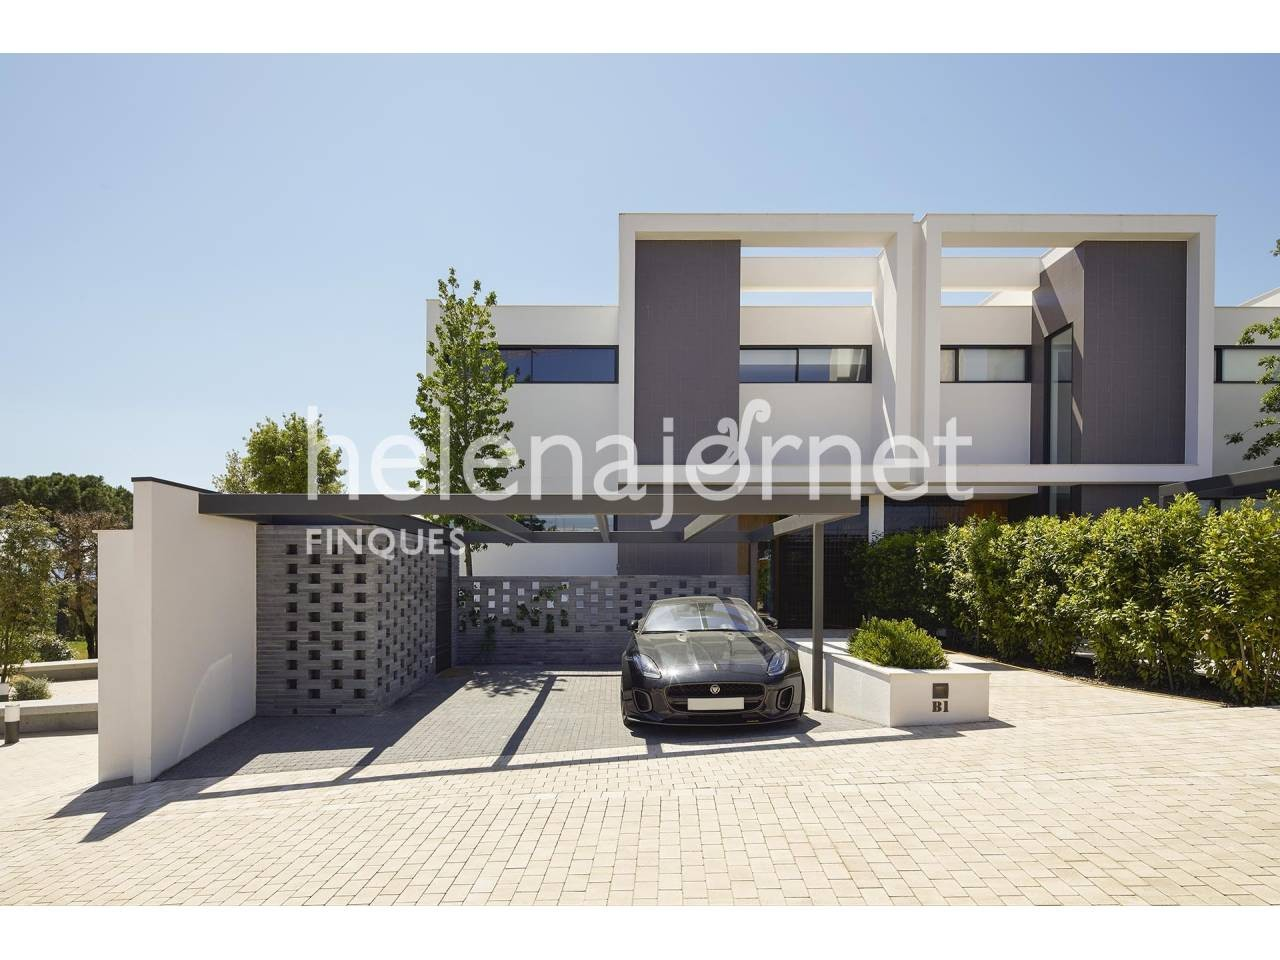 Design corner townhouse with terrace and private garden - 1221